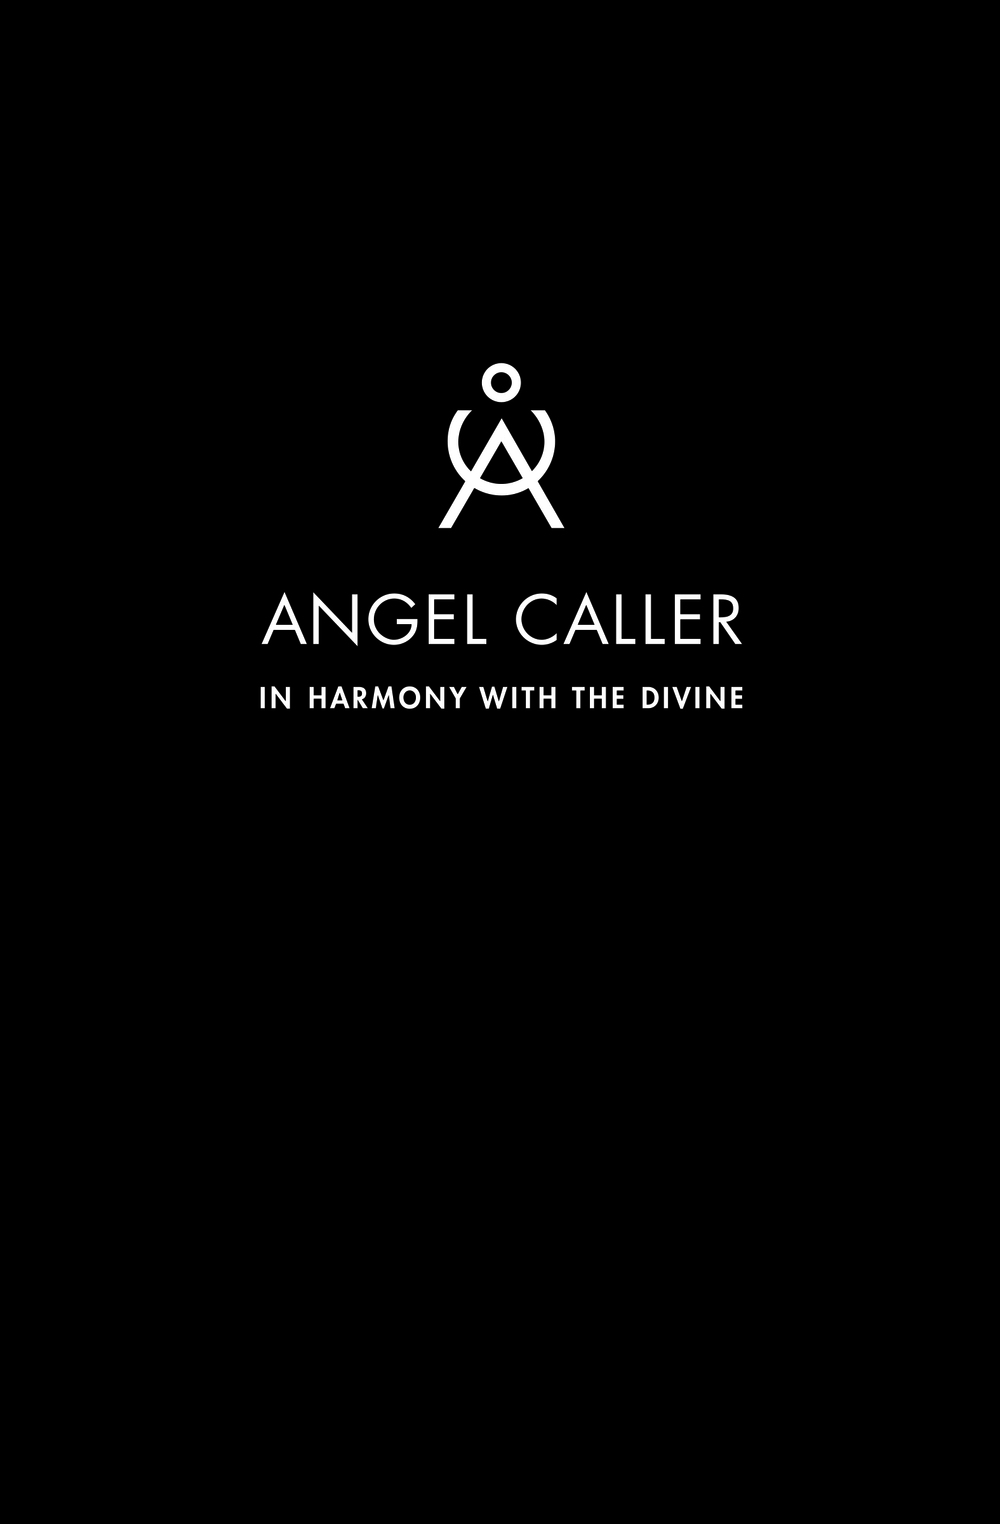 ANGEL CALLER: In Harmony With The Divine